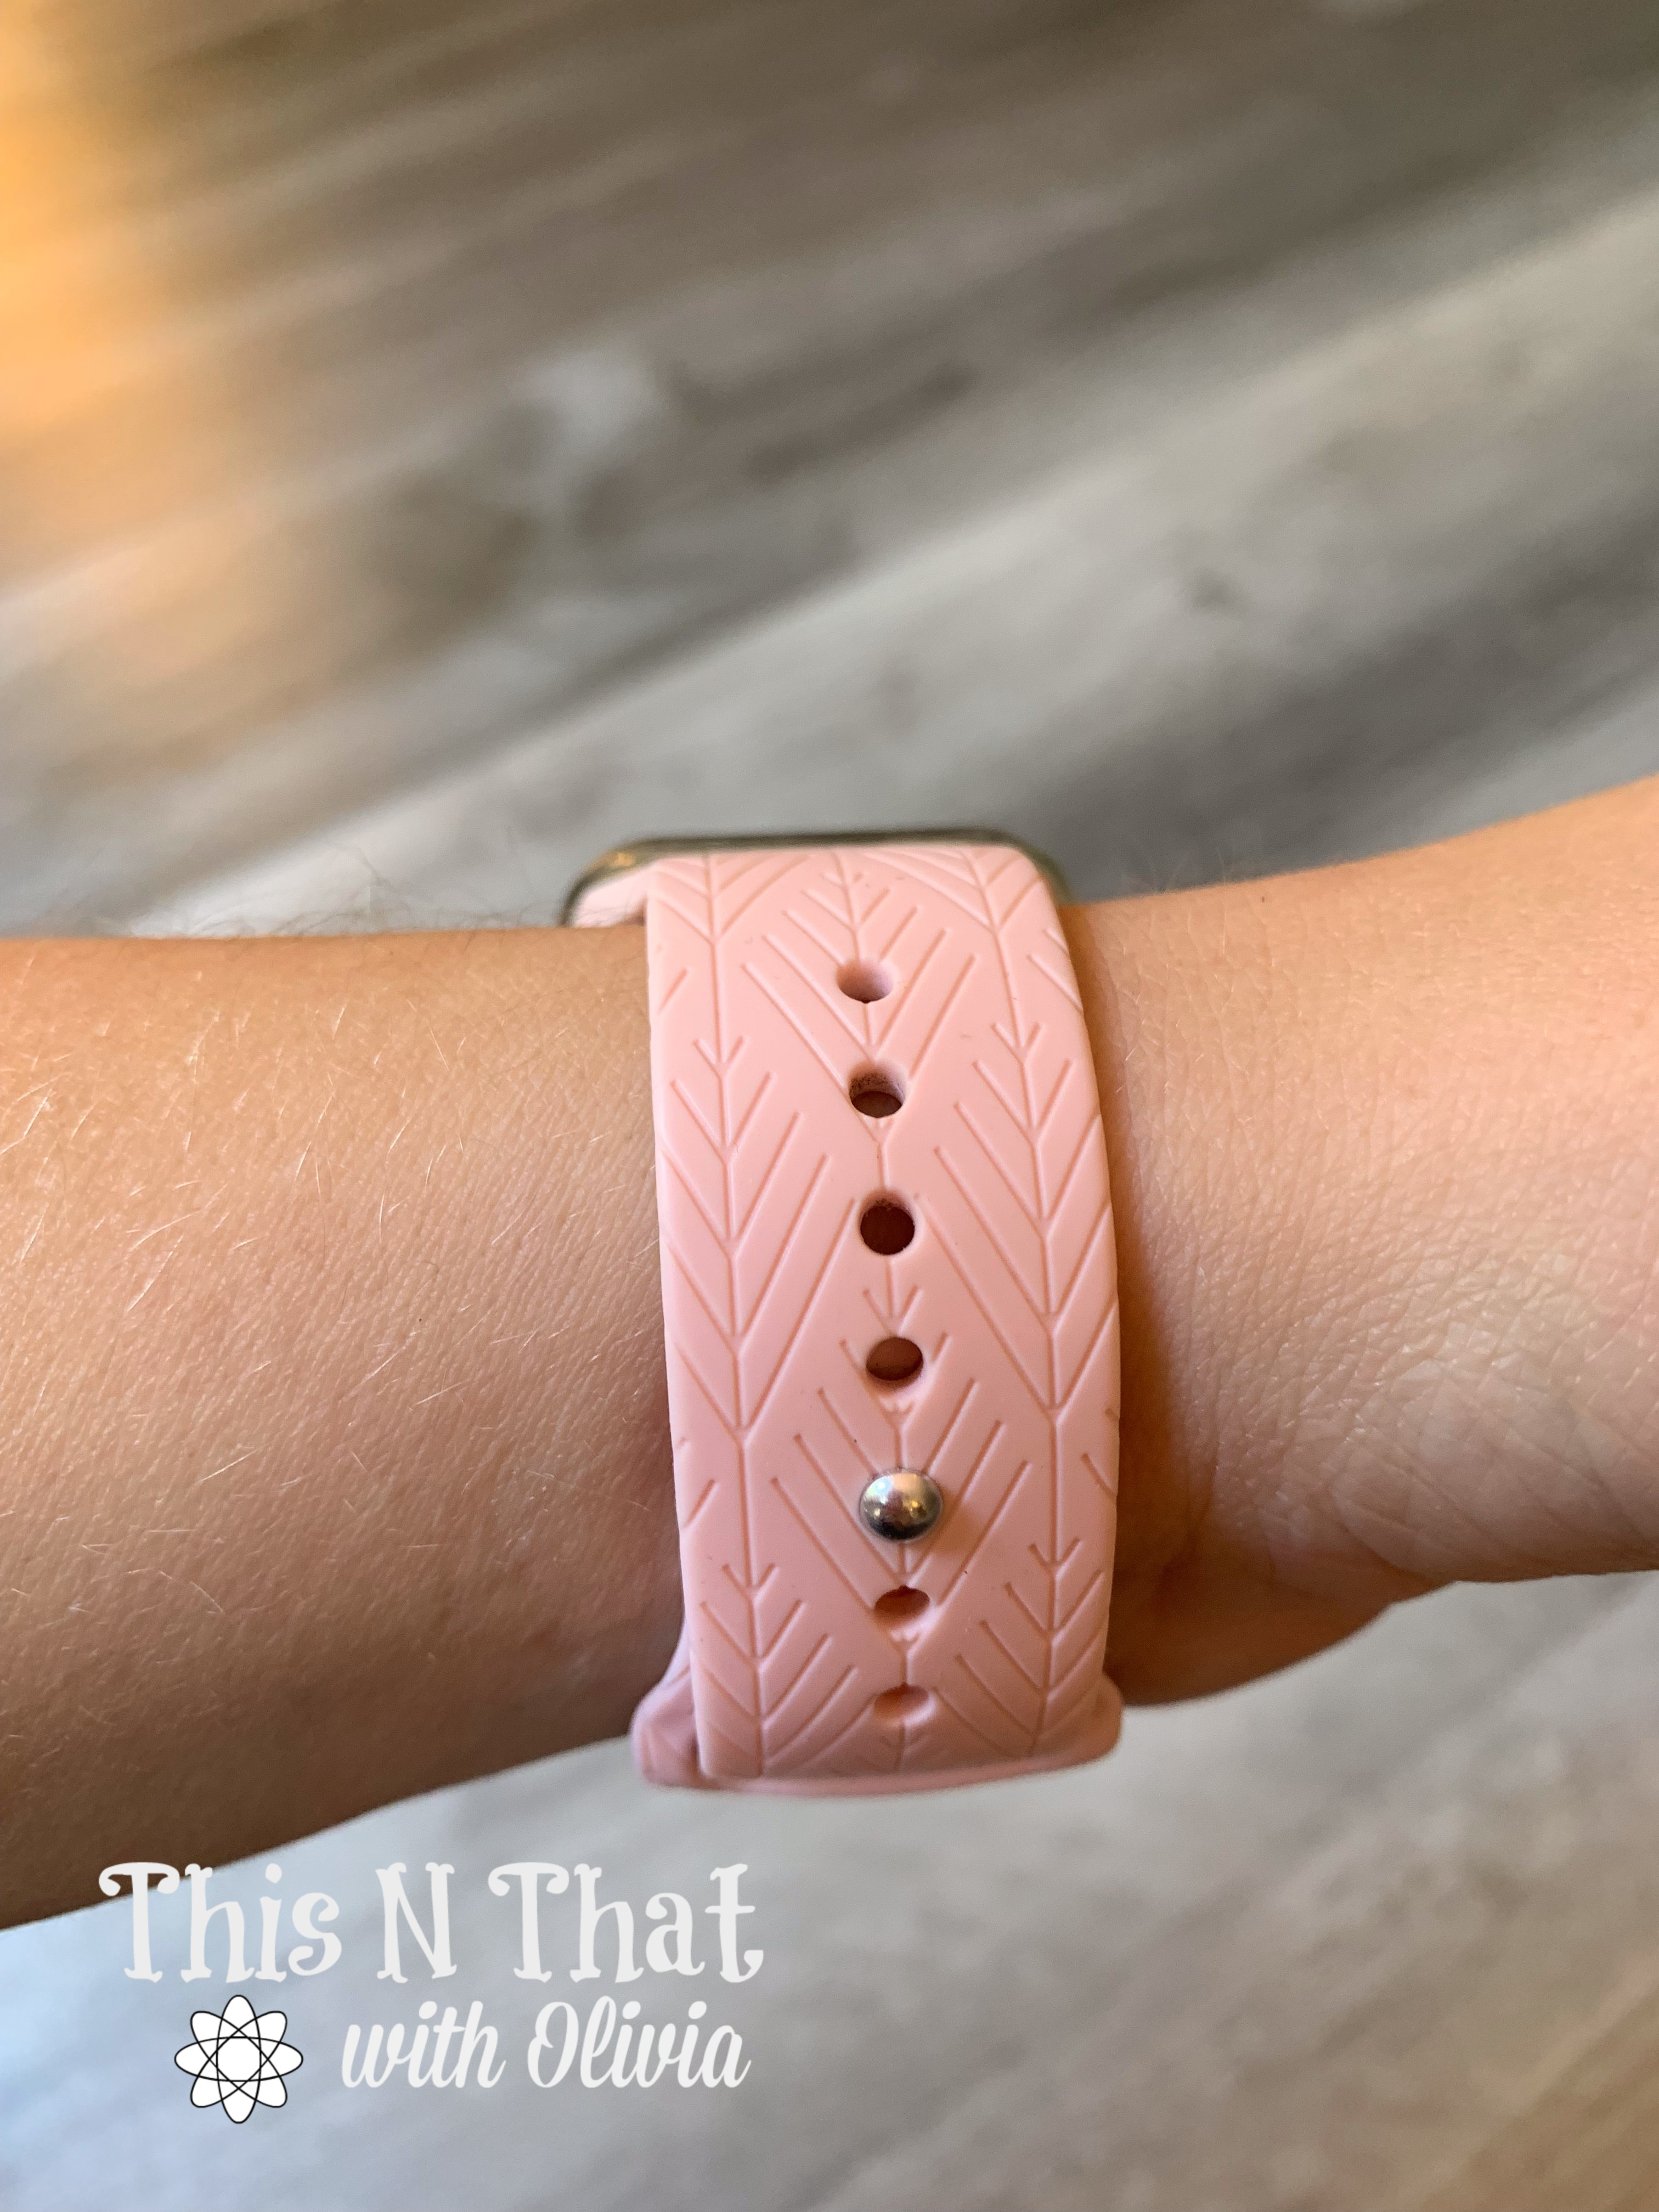 Groove Life Apple Watch Bands: Comfortable and Durable!